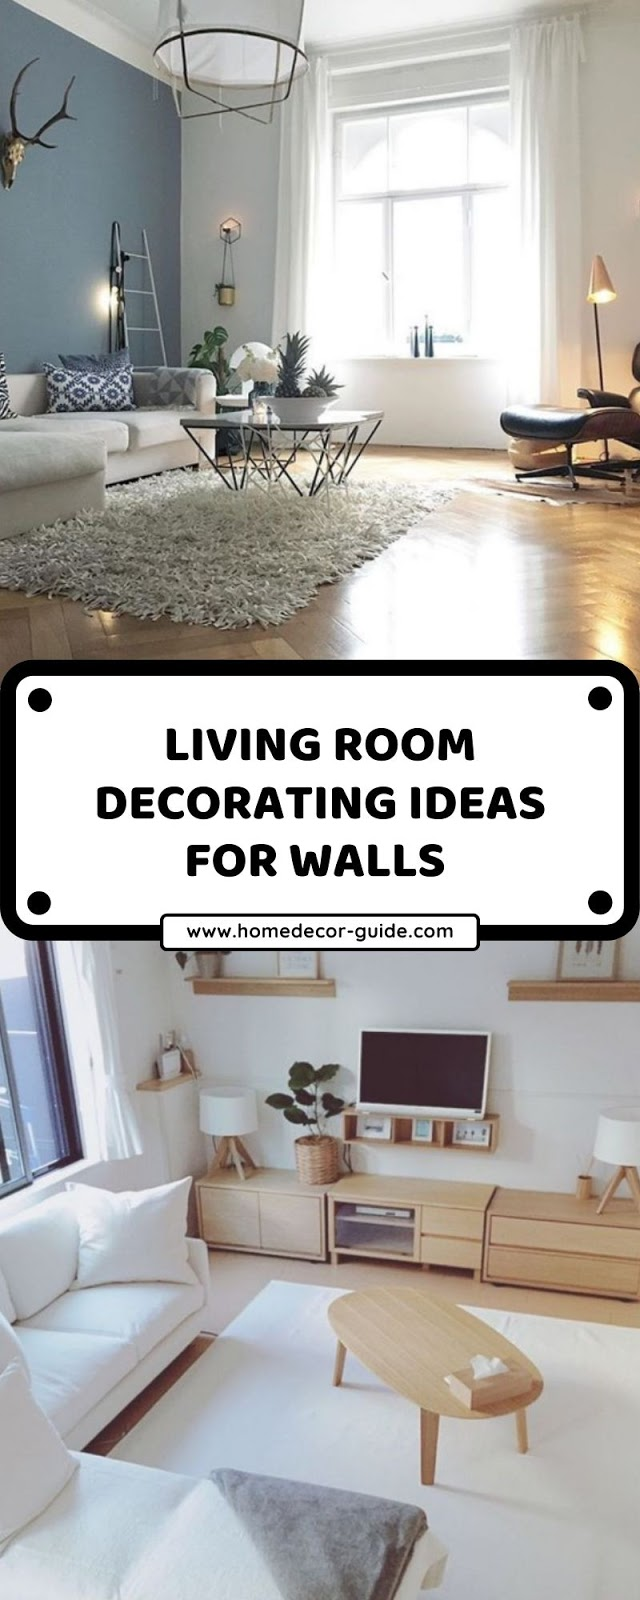 LIVING ROOM DECORATING IDEAS FOR WALLS